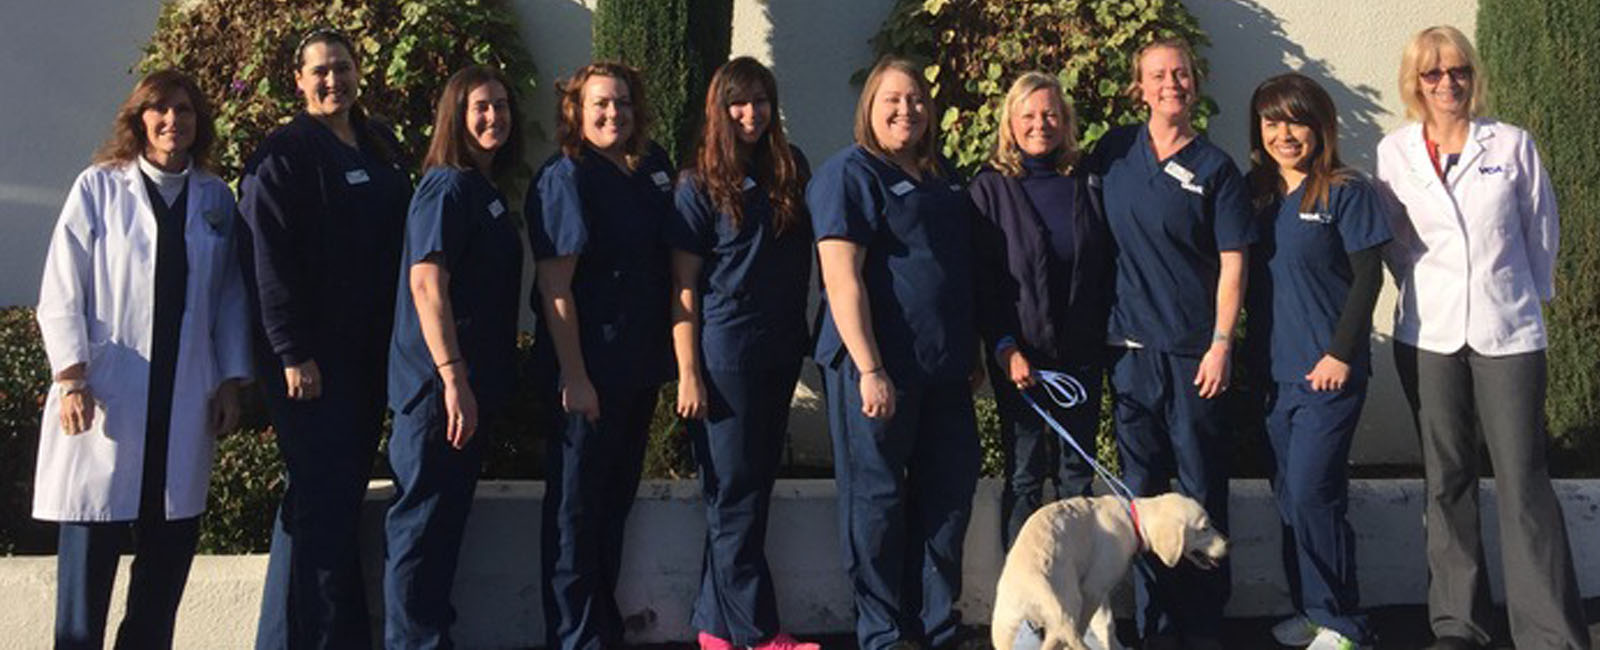 Homepage Team Picture of VCA Grossmont Animal Hospital